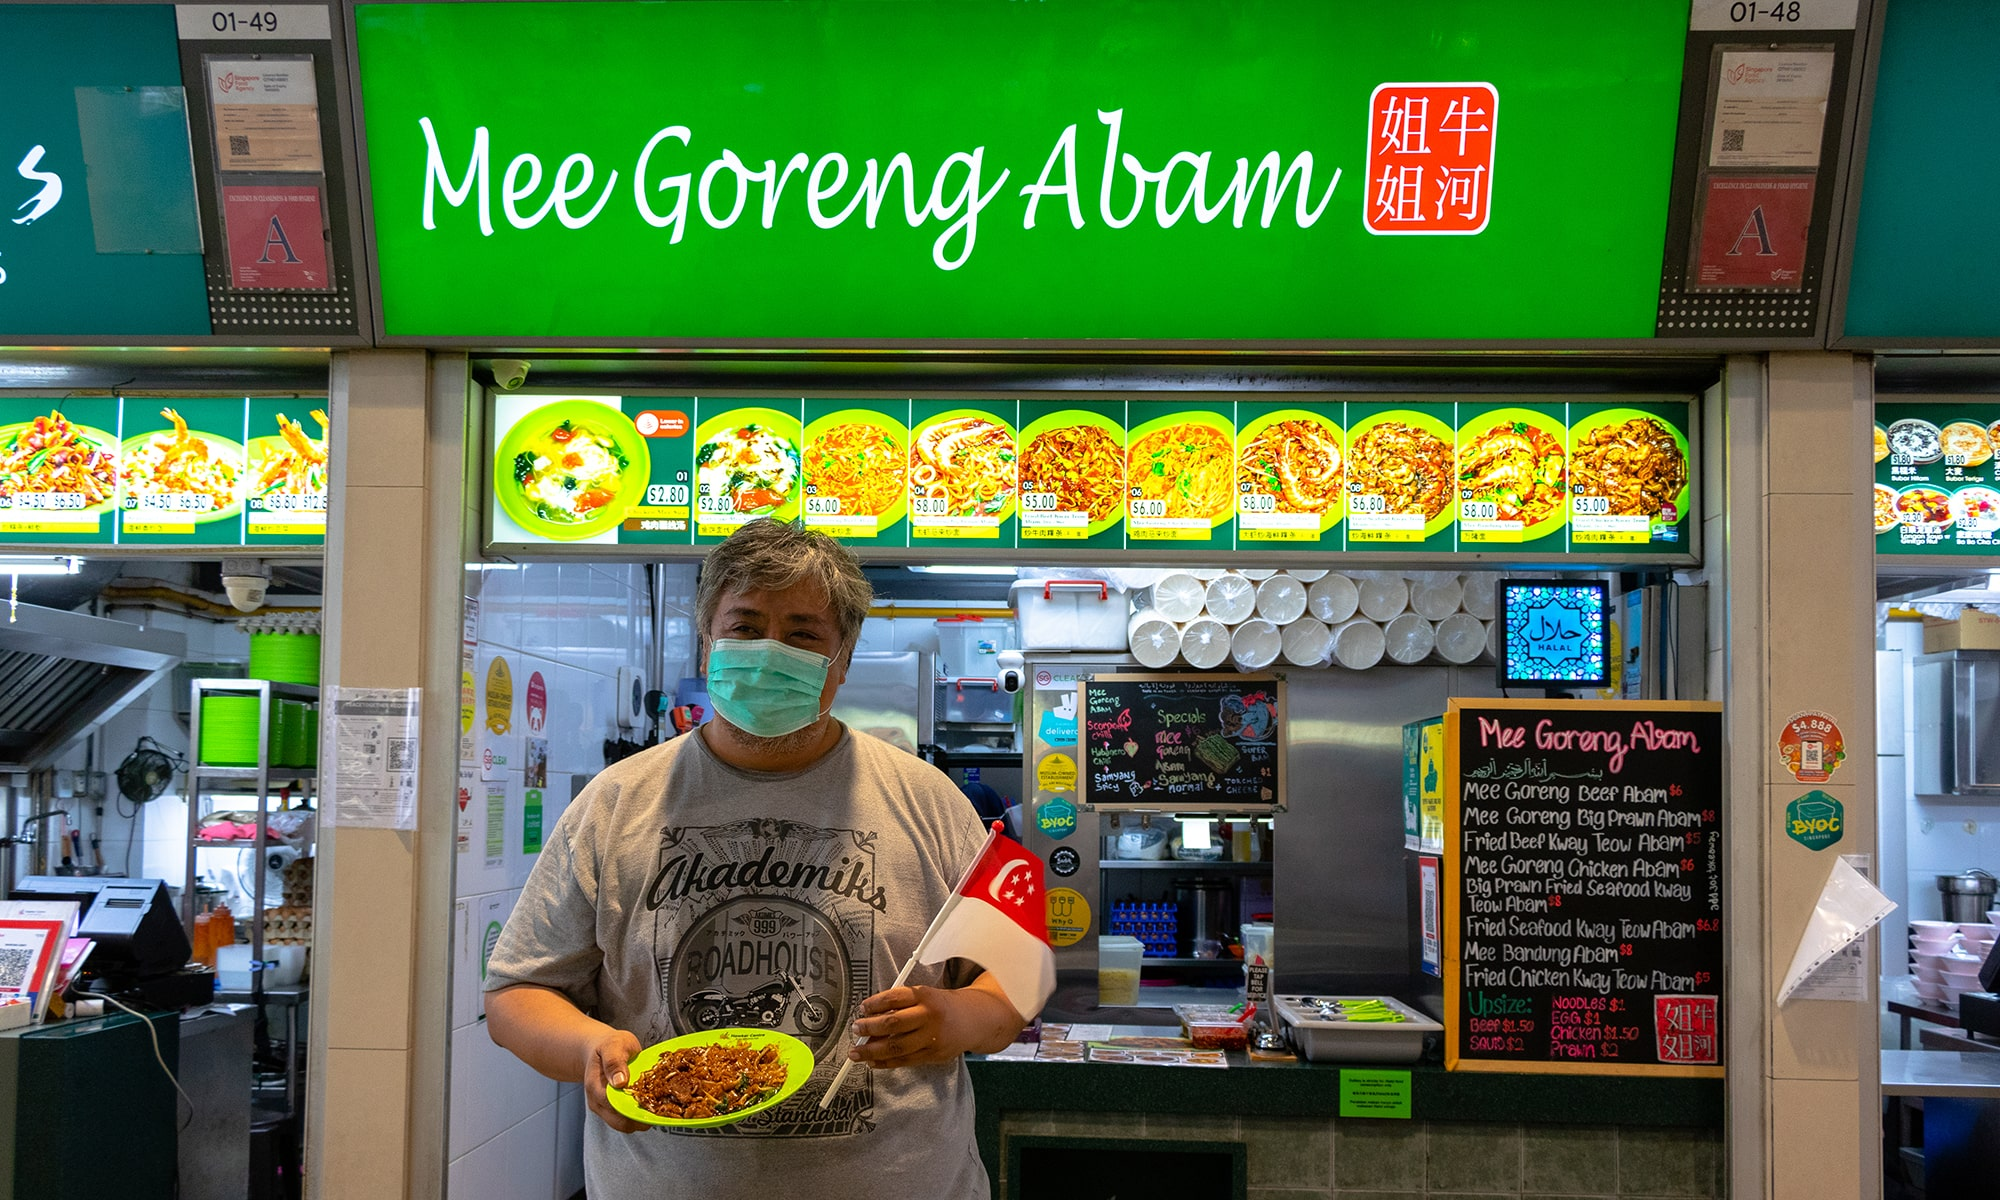 Mee Goreng Abam at Our Tampines Hub Hawker, available on WhyQ for delivery.